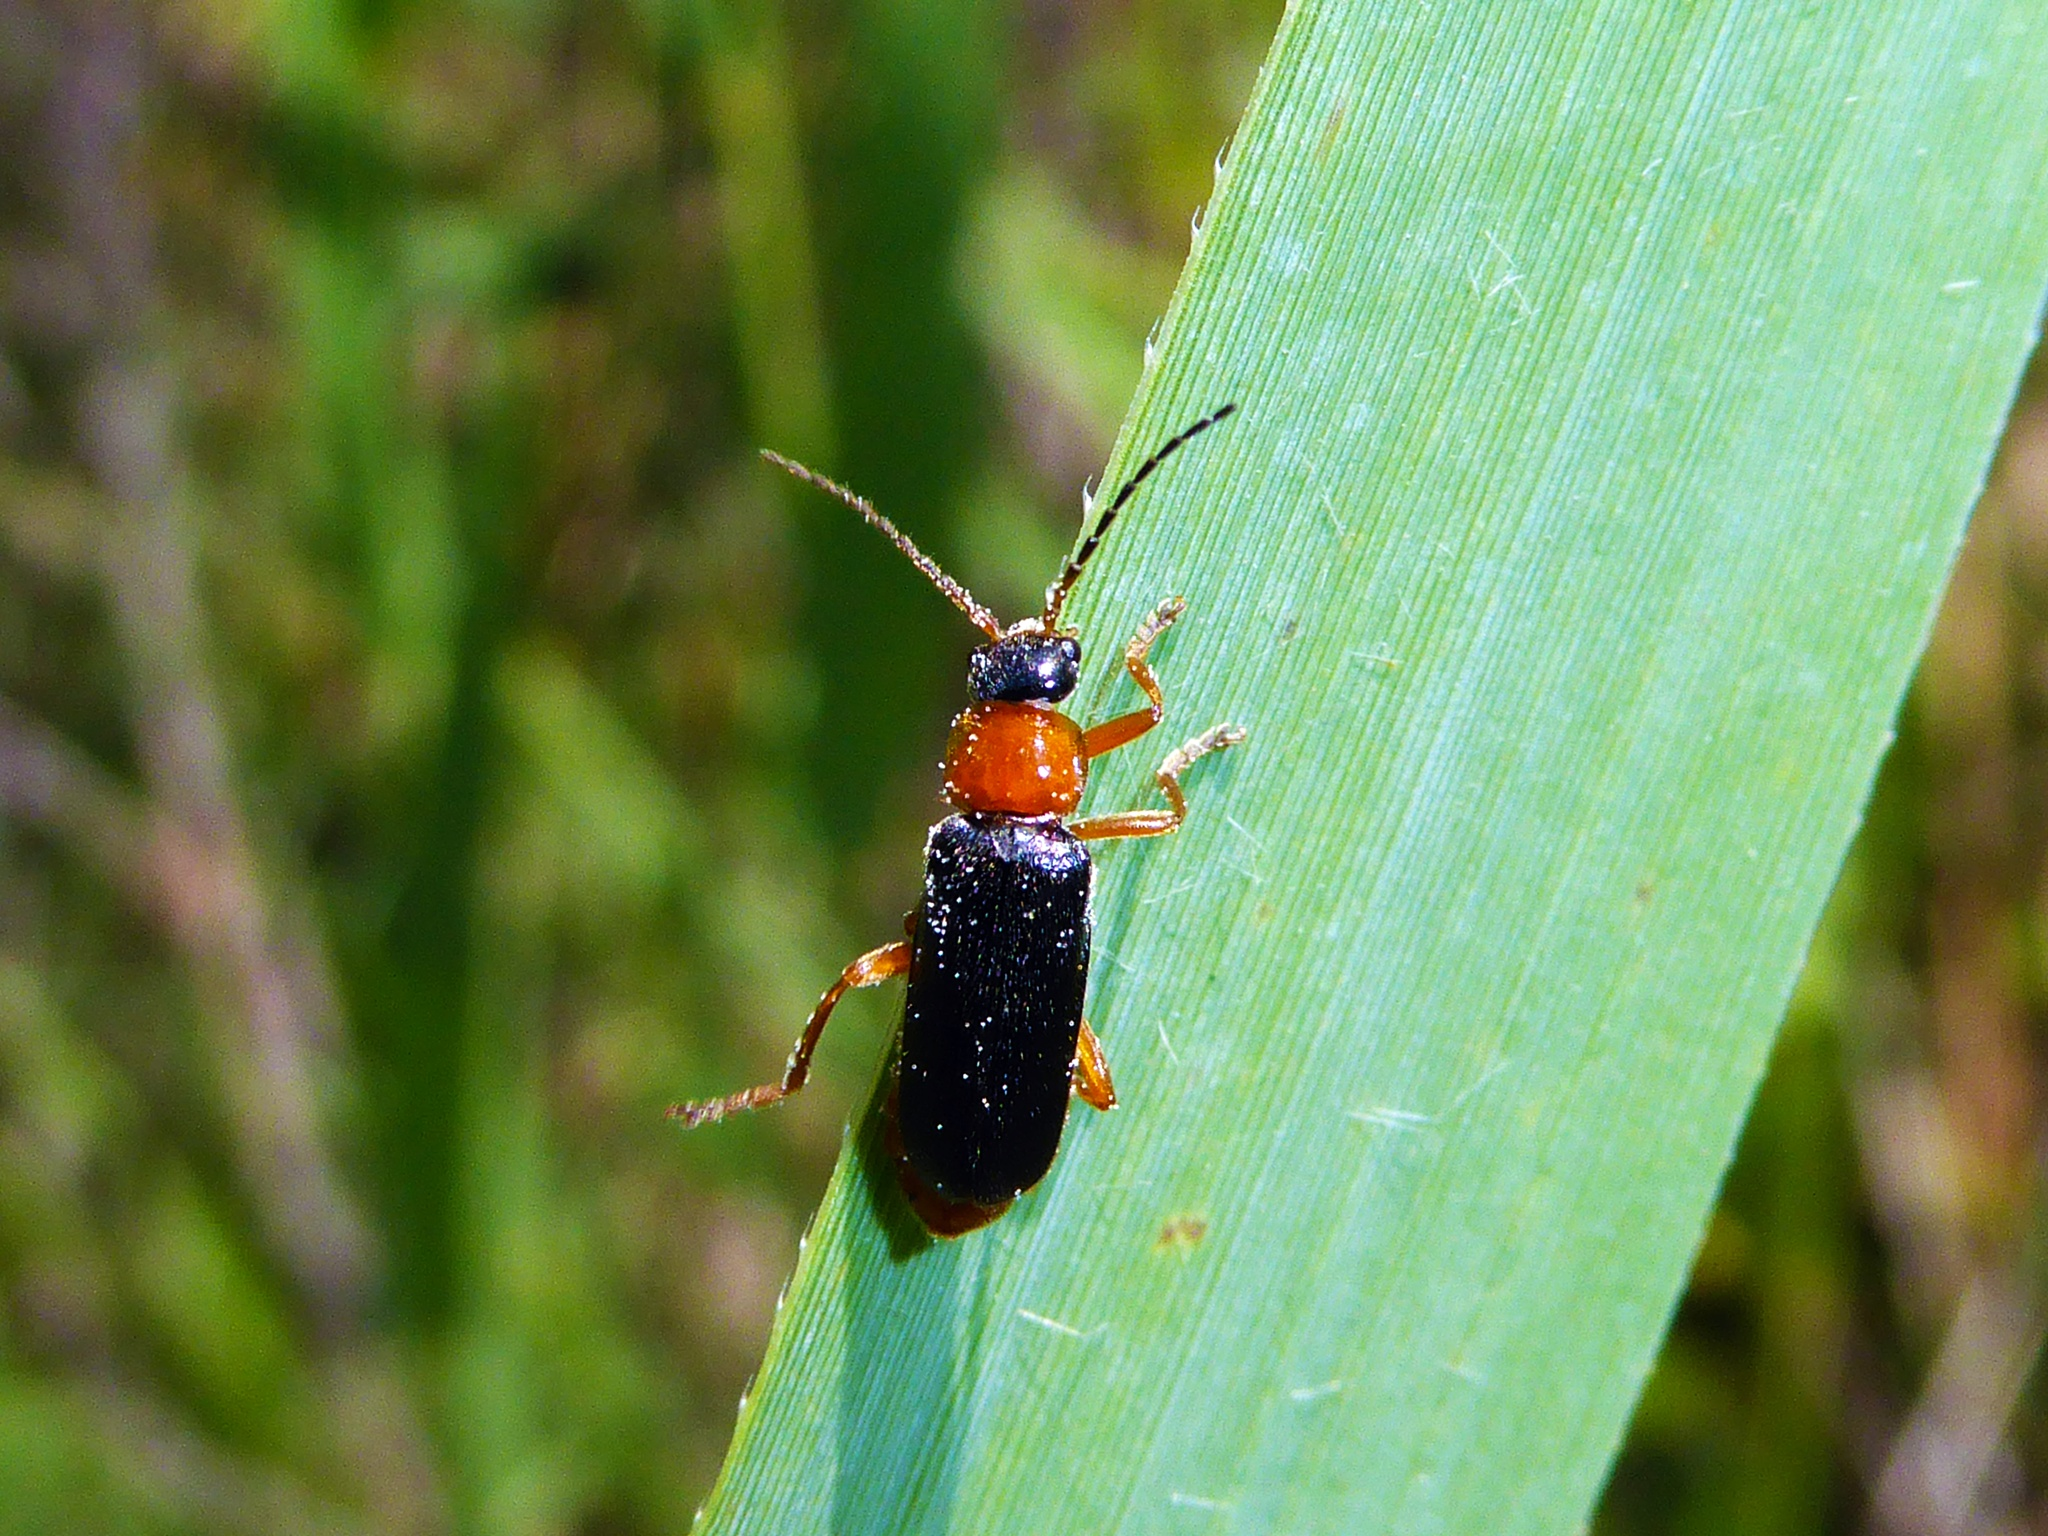 Cantharis fulvicollis by peppe953